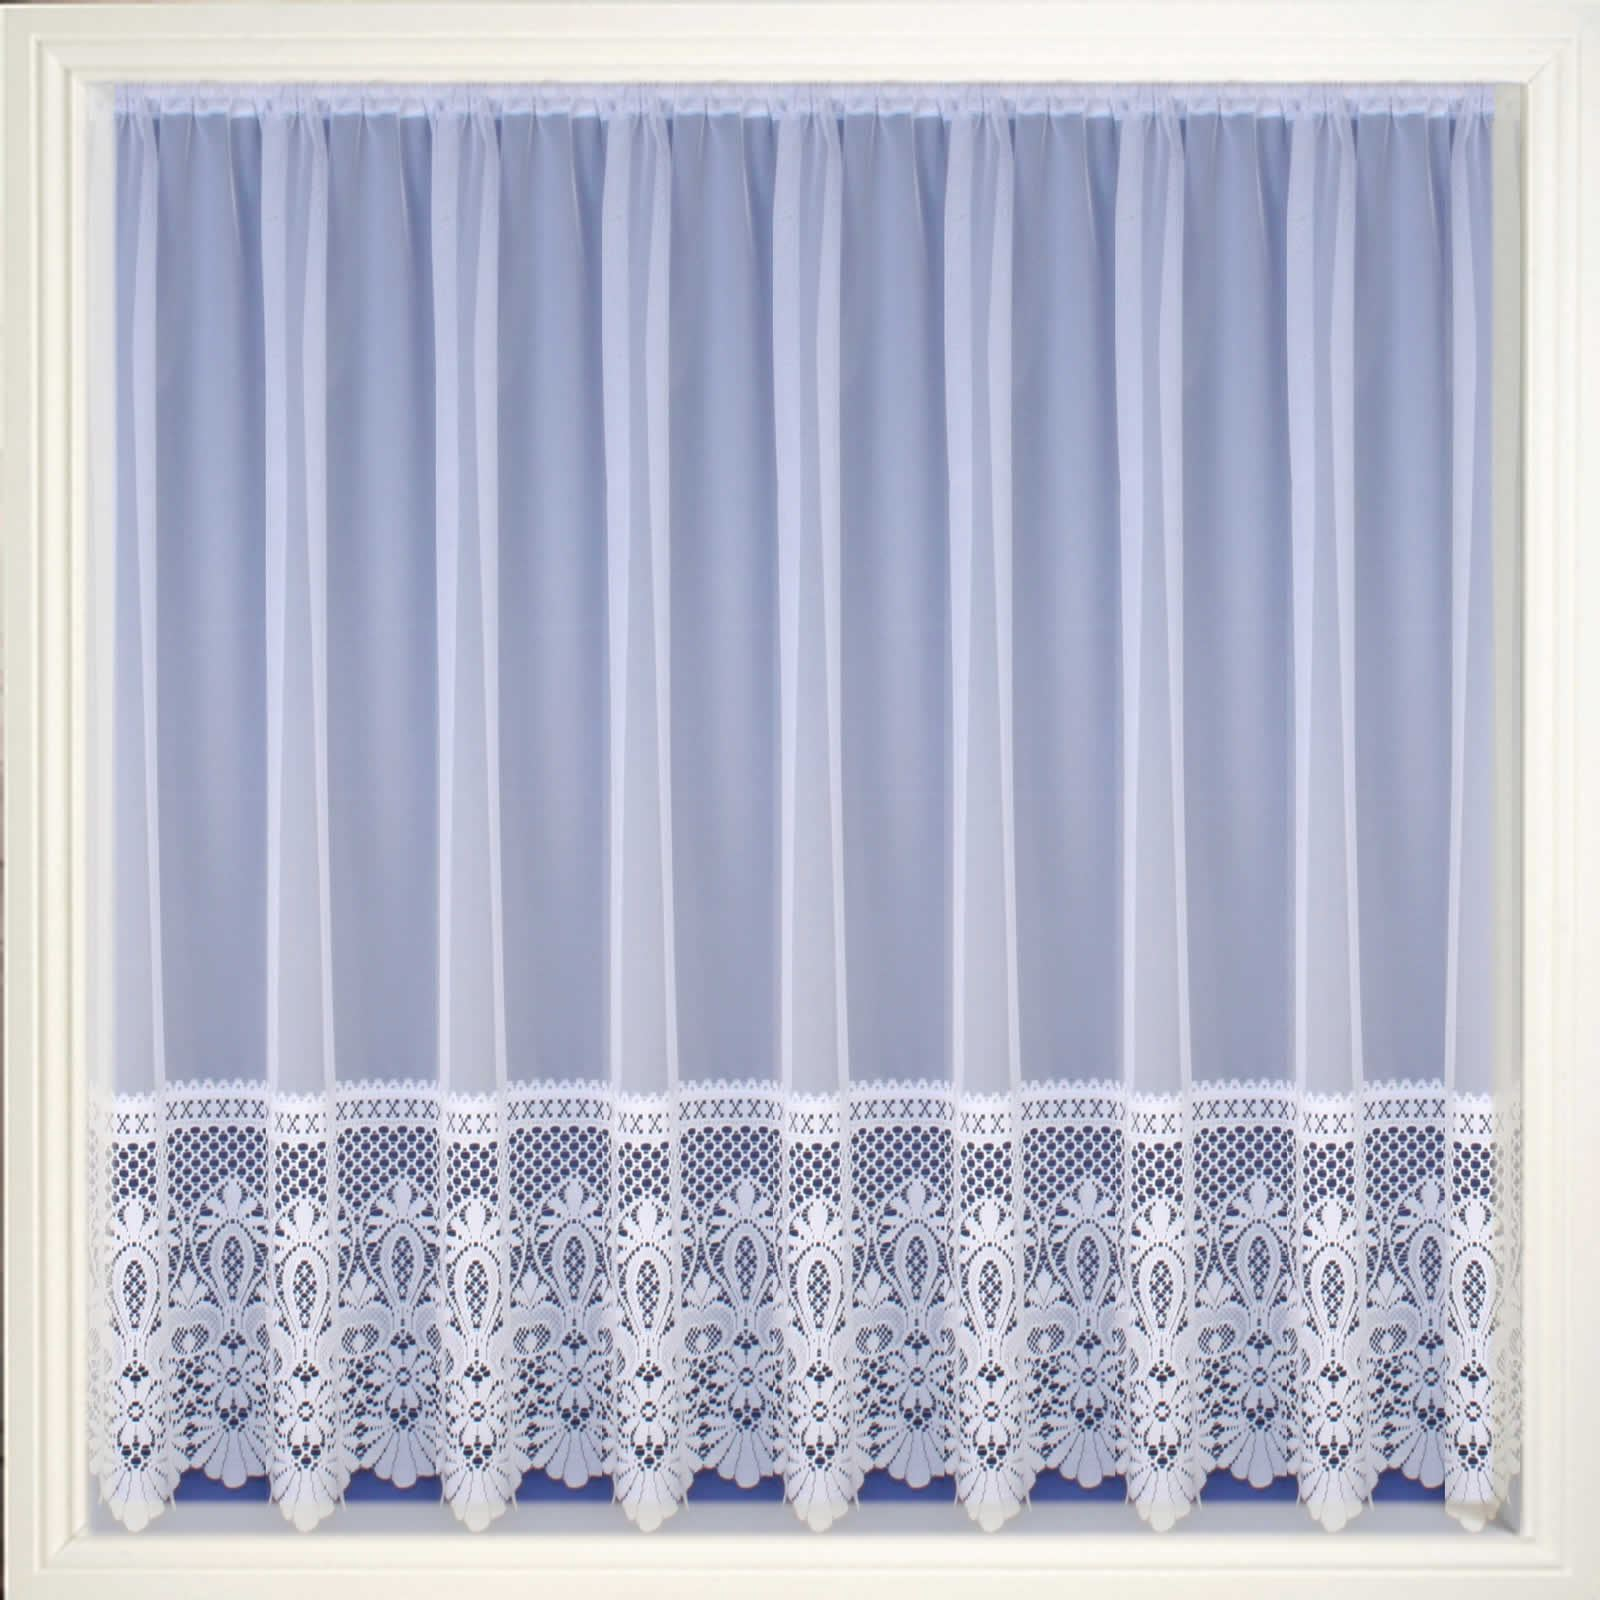 Modern White Sheers Net Curtain Luxury Lace Curtains Nets